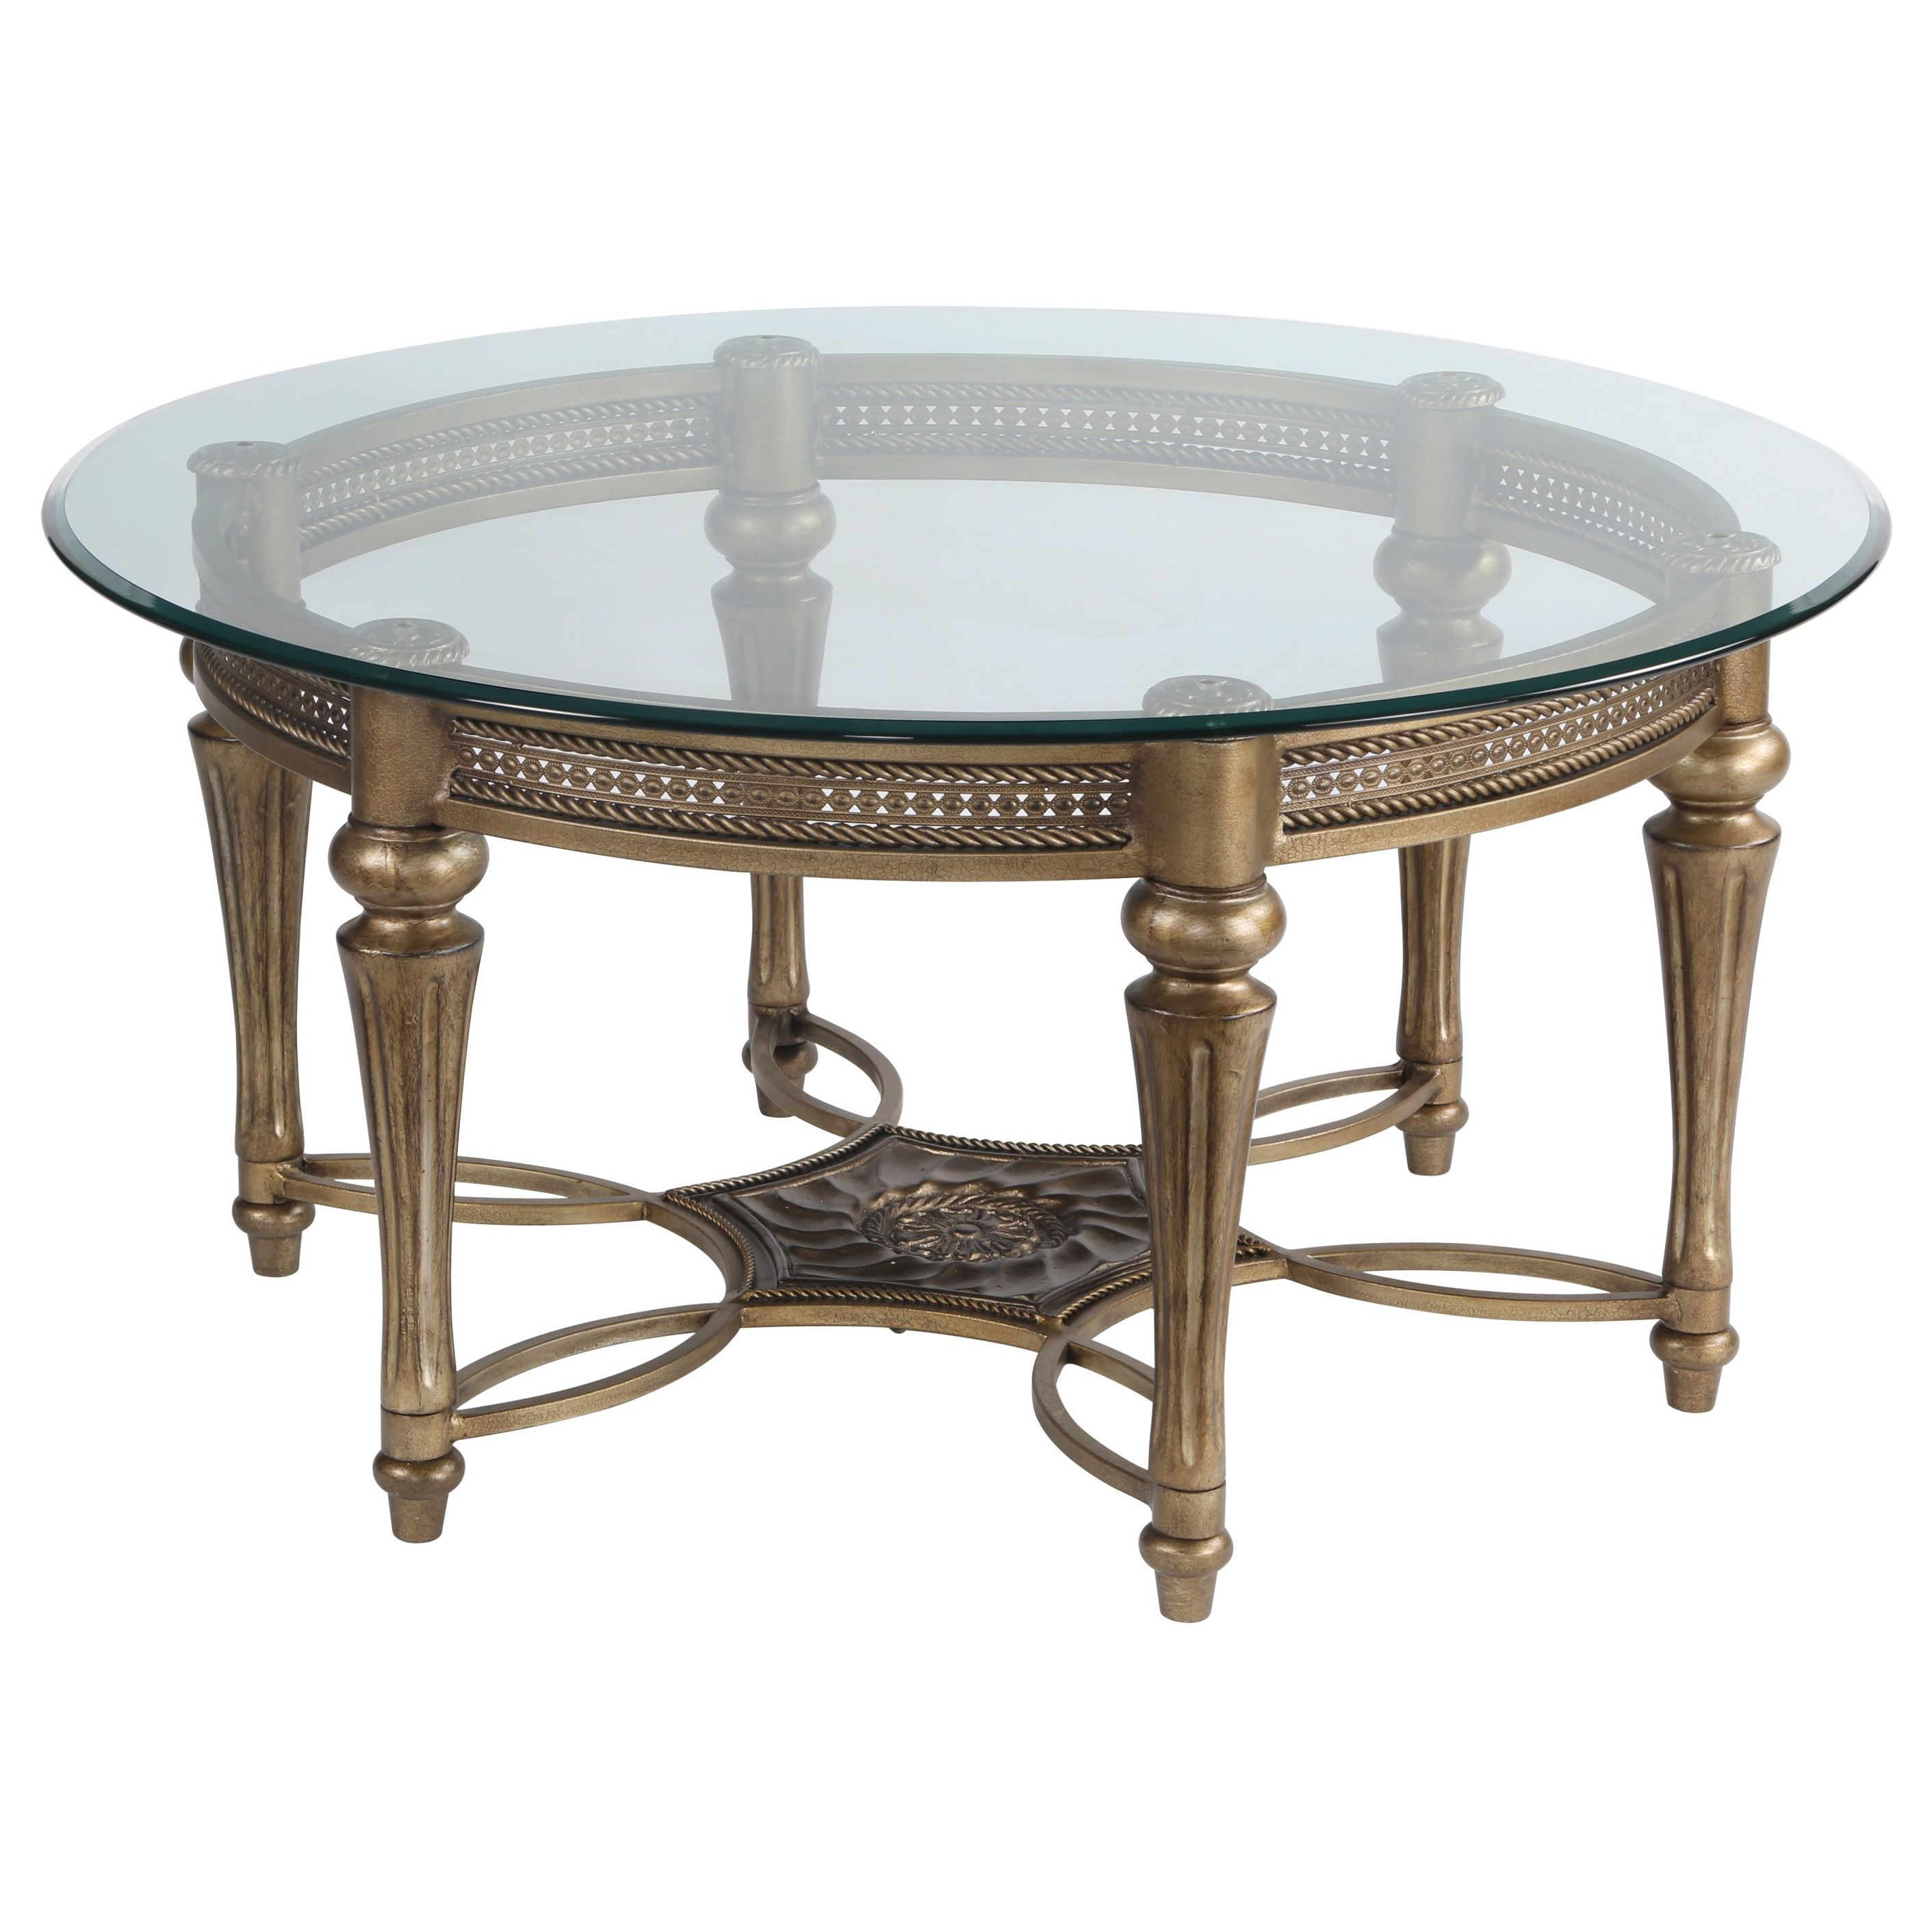 Galloway round cocktail table with glass top overstock galloway round cocktail table with glass top overstock shopping the best deals geotapseo Image collections